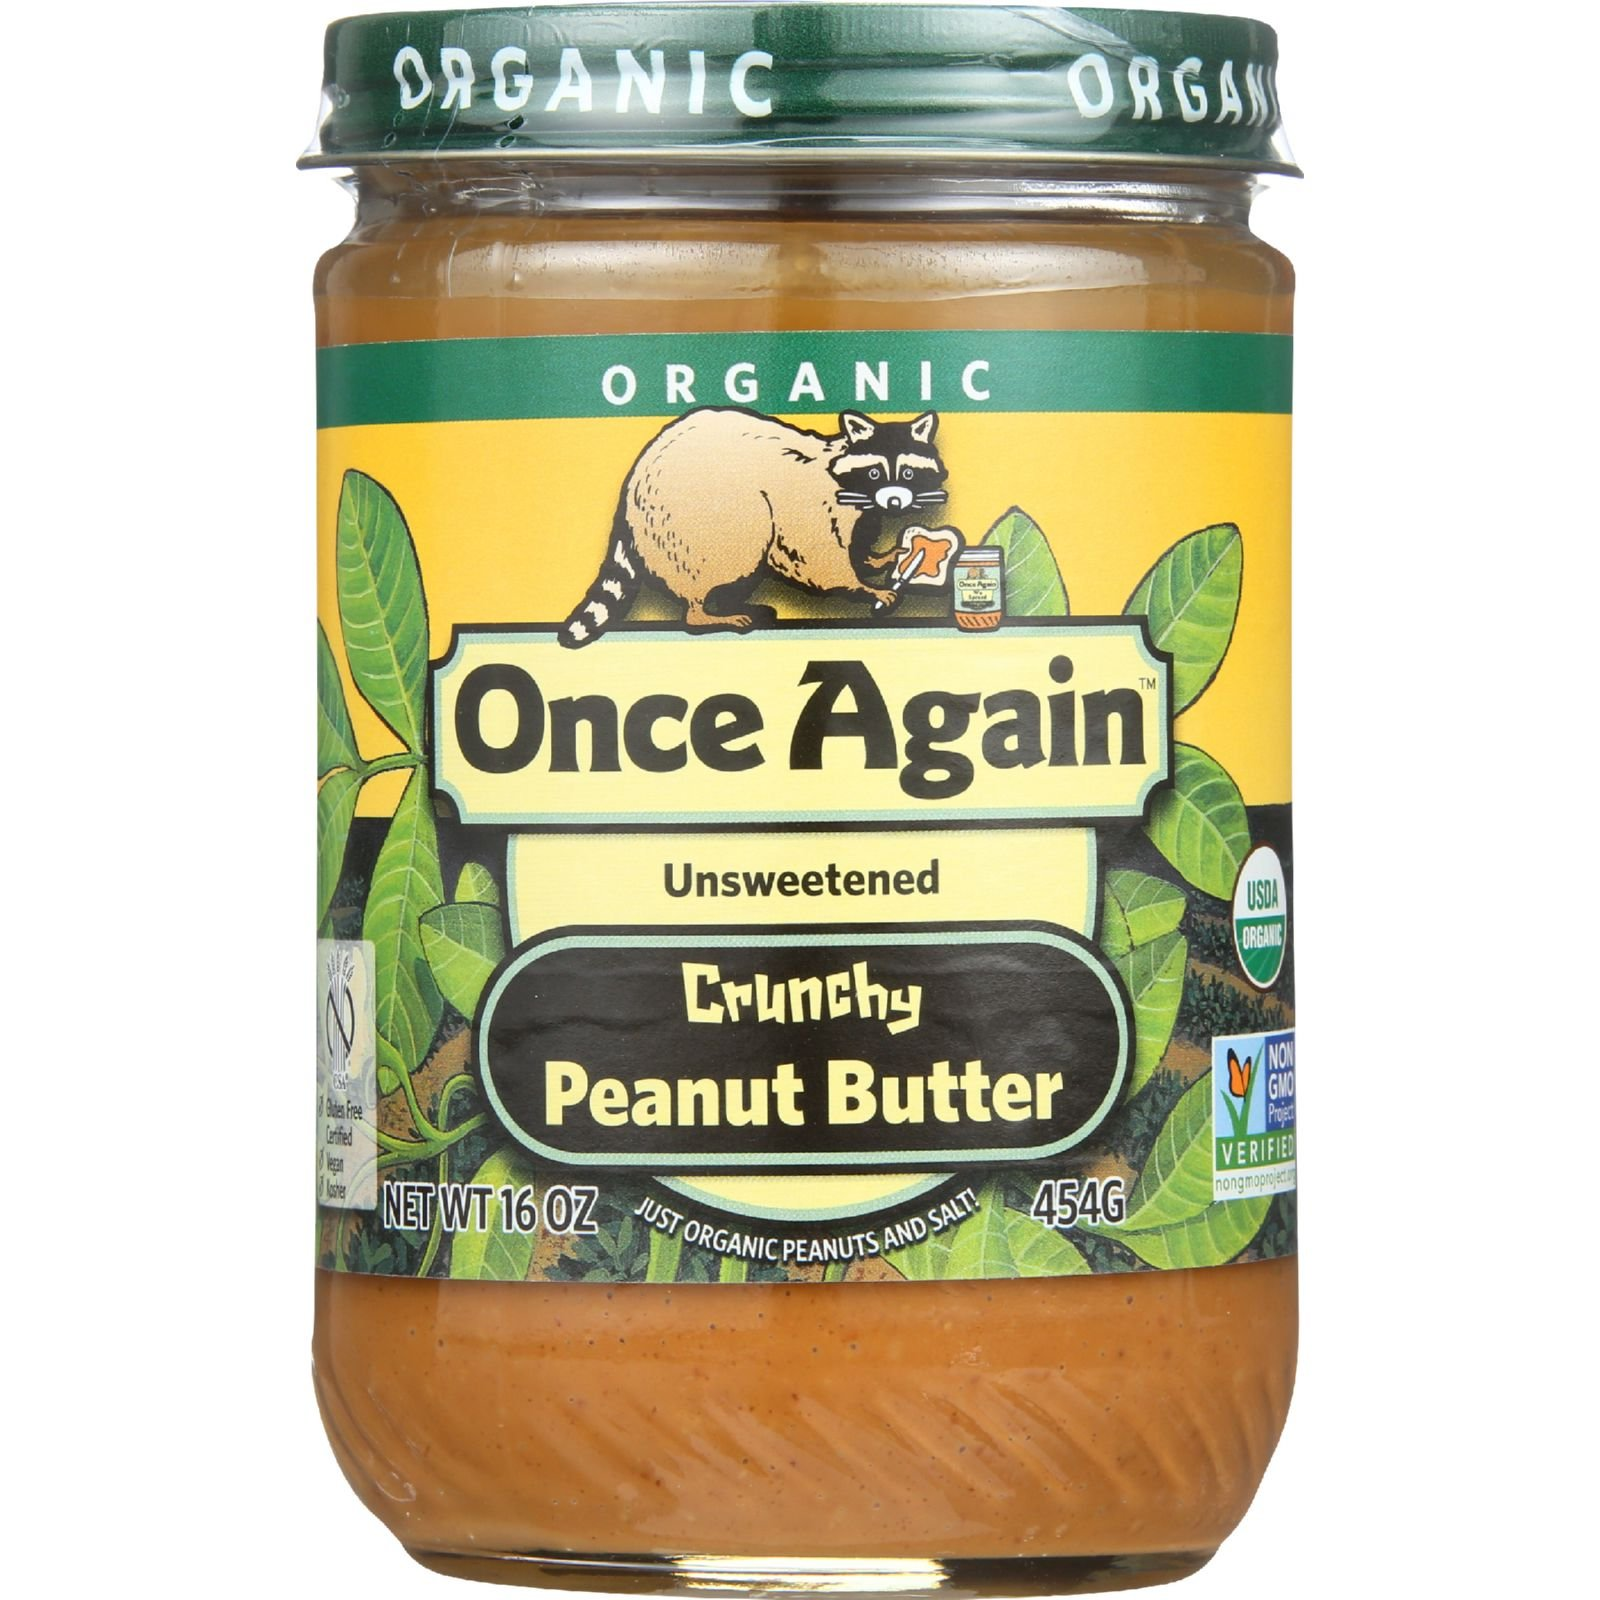 Once Again Peanut Butter Crunchy Organic, 16 oz